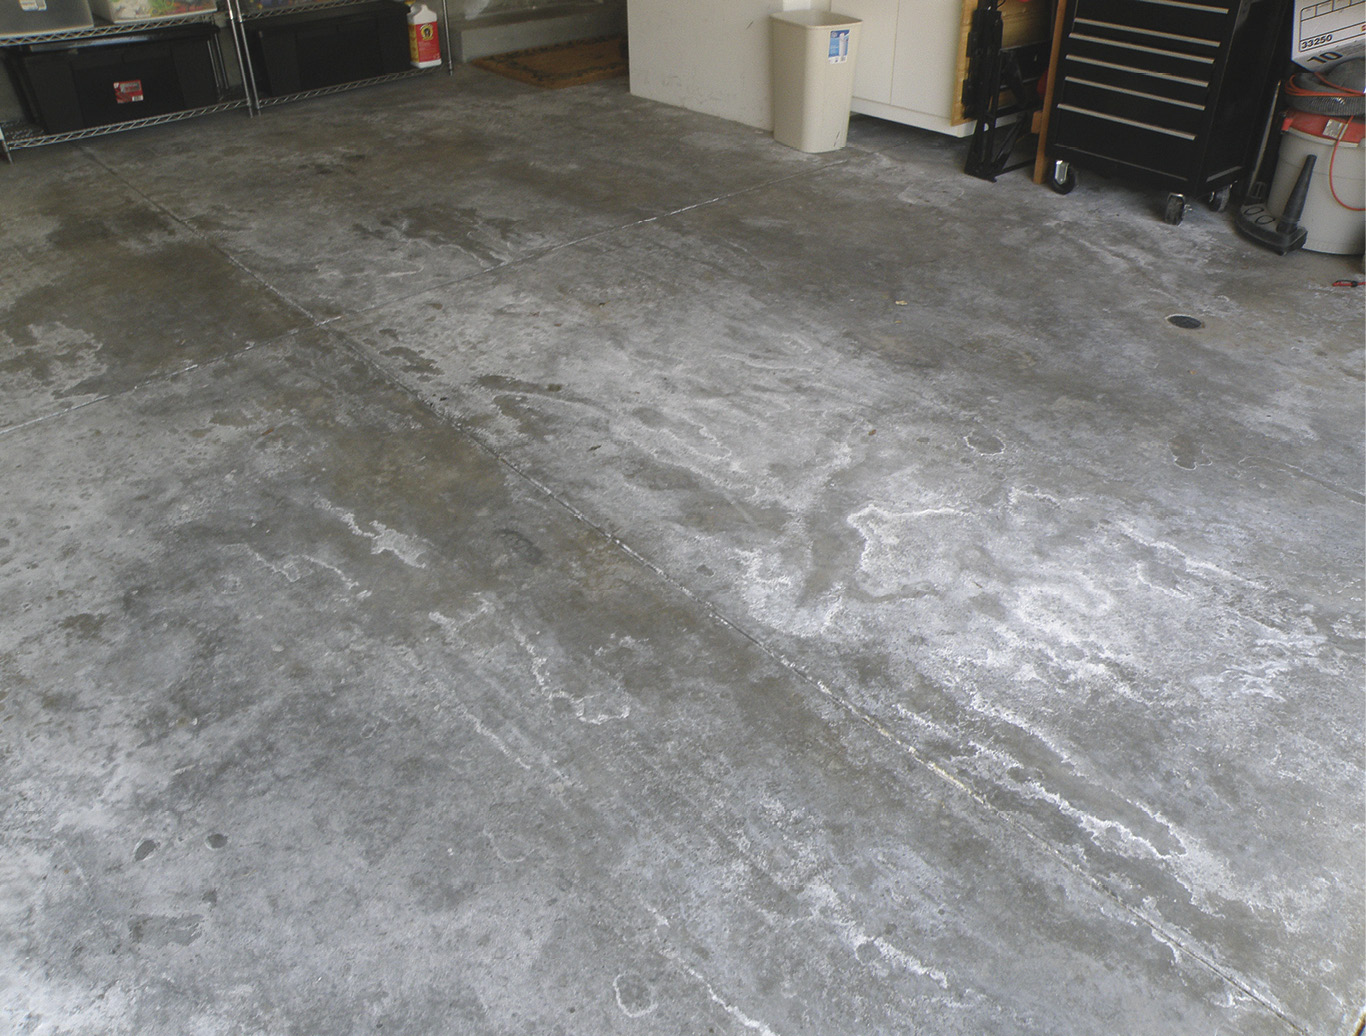 remediating moisture in concrete is important as moisture can come through due to your topographical location